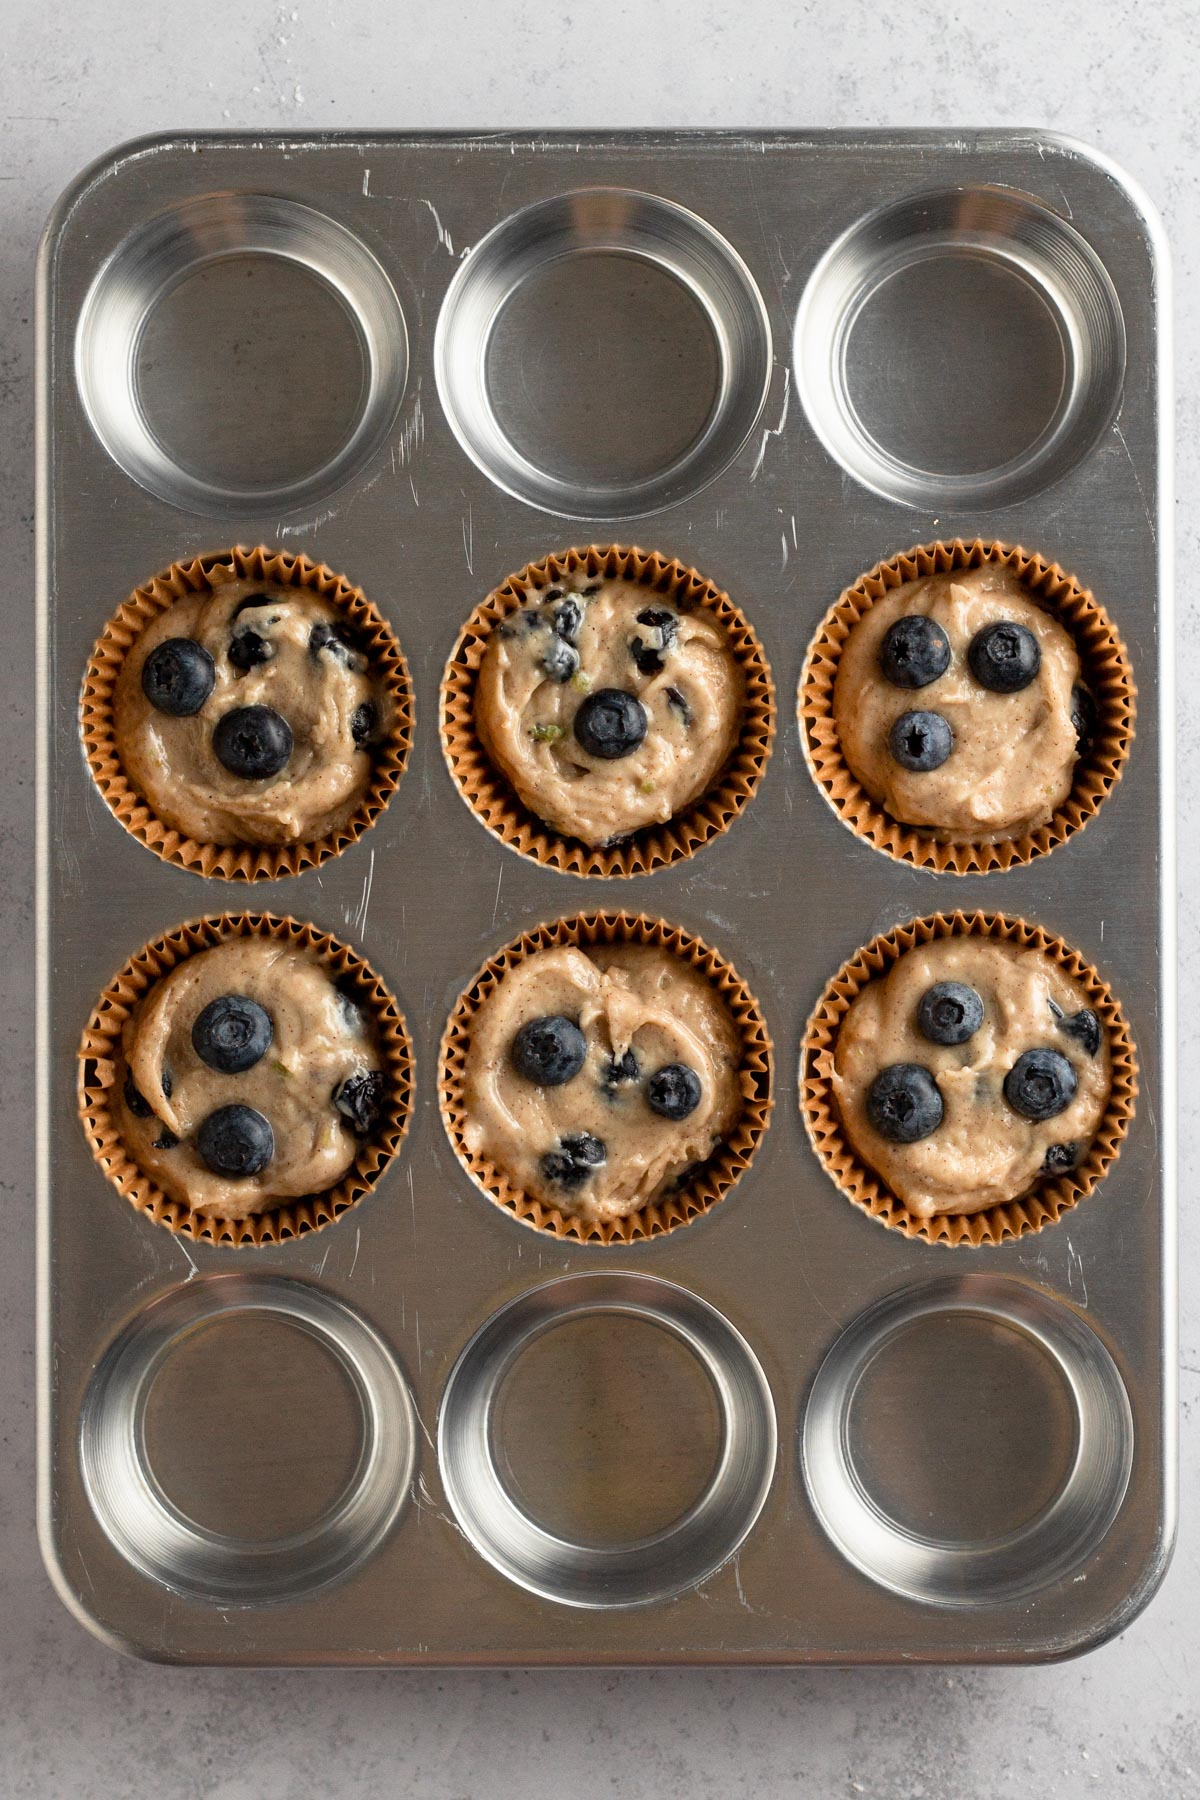 overhead view of muffin batter in brown paper liners in a metal muffin pan